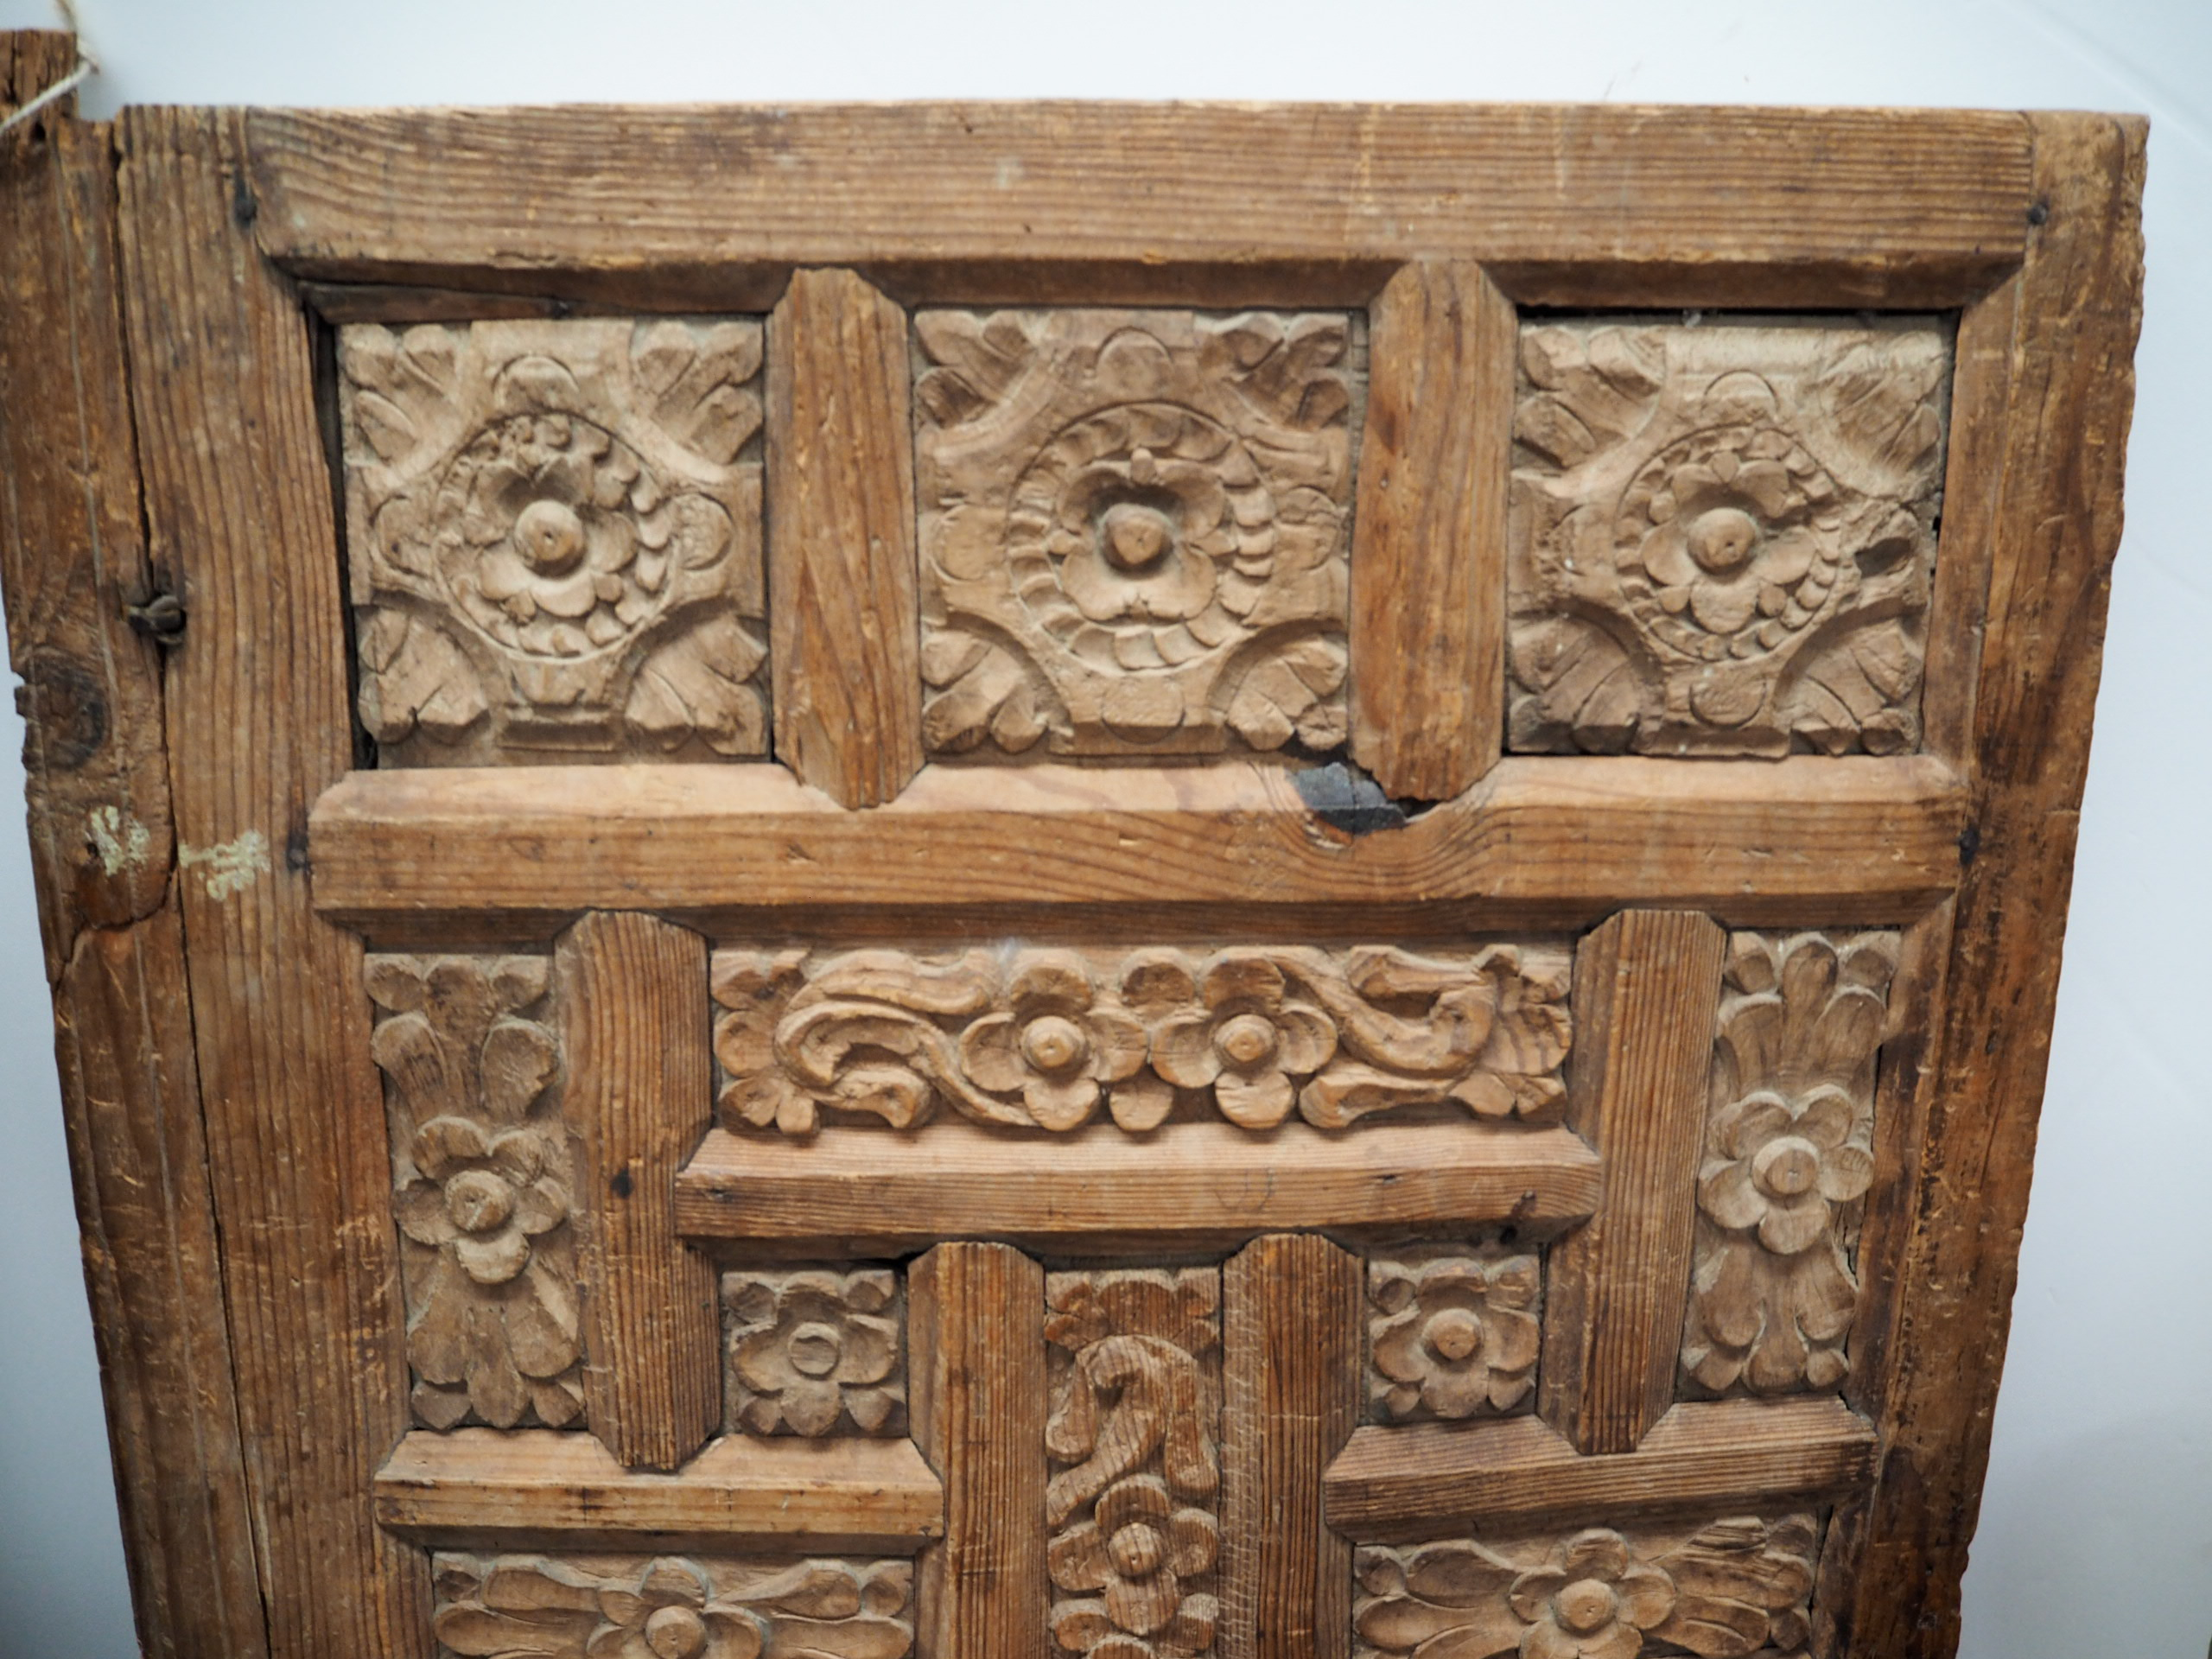 Antique Ottoman period carved door